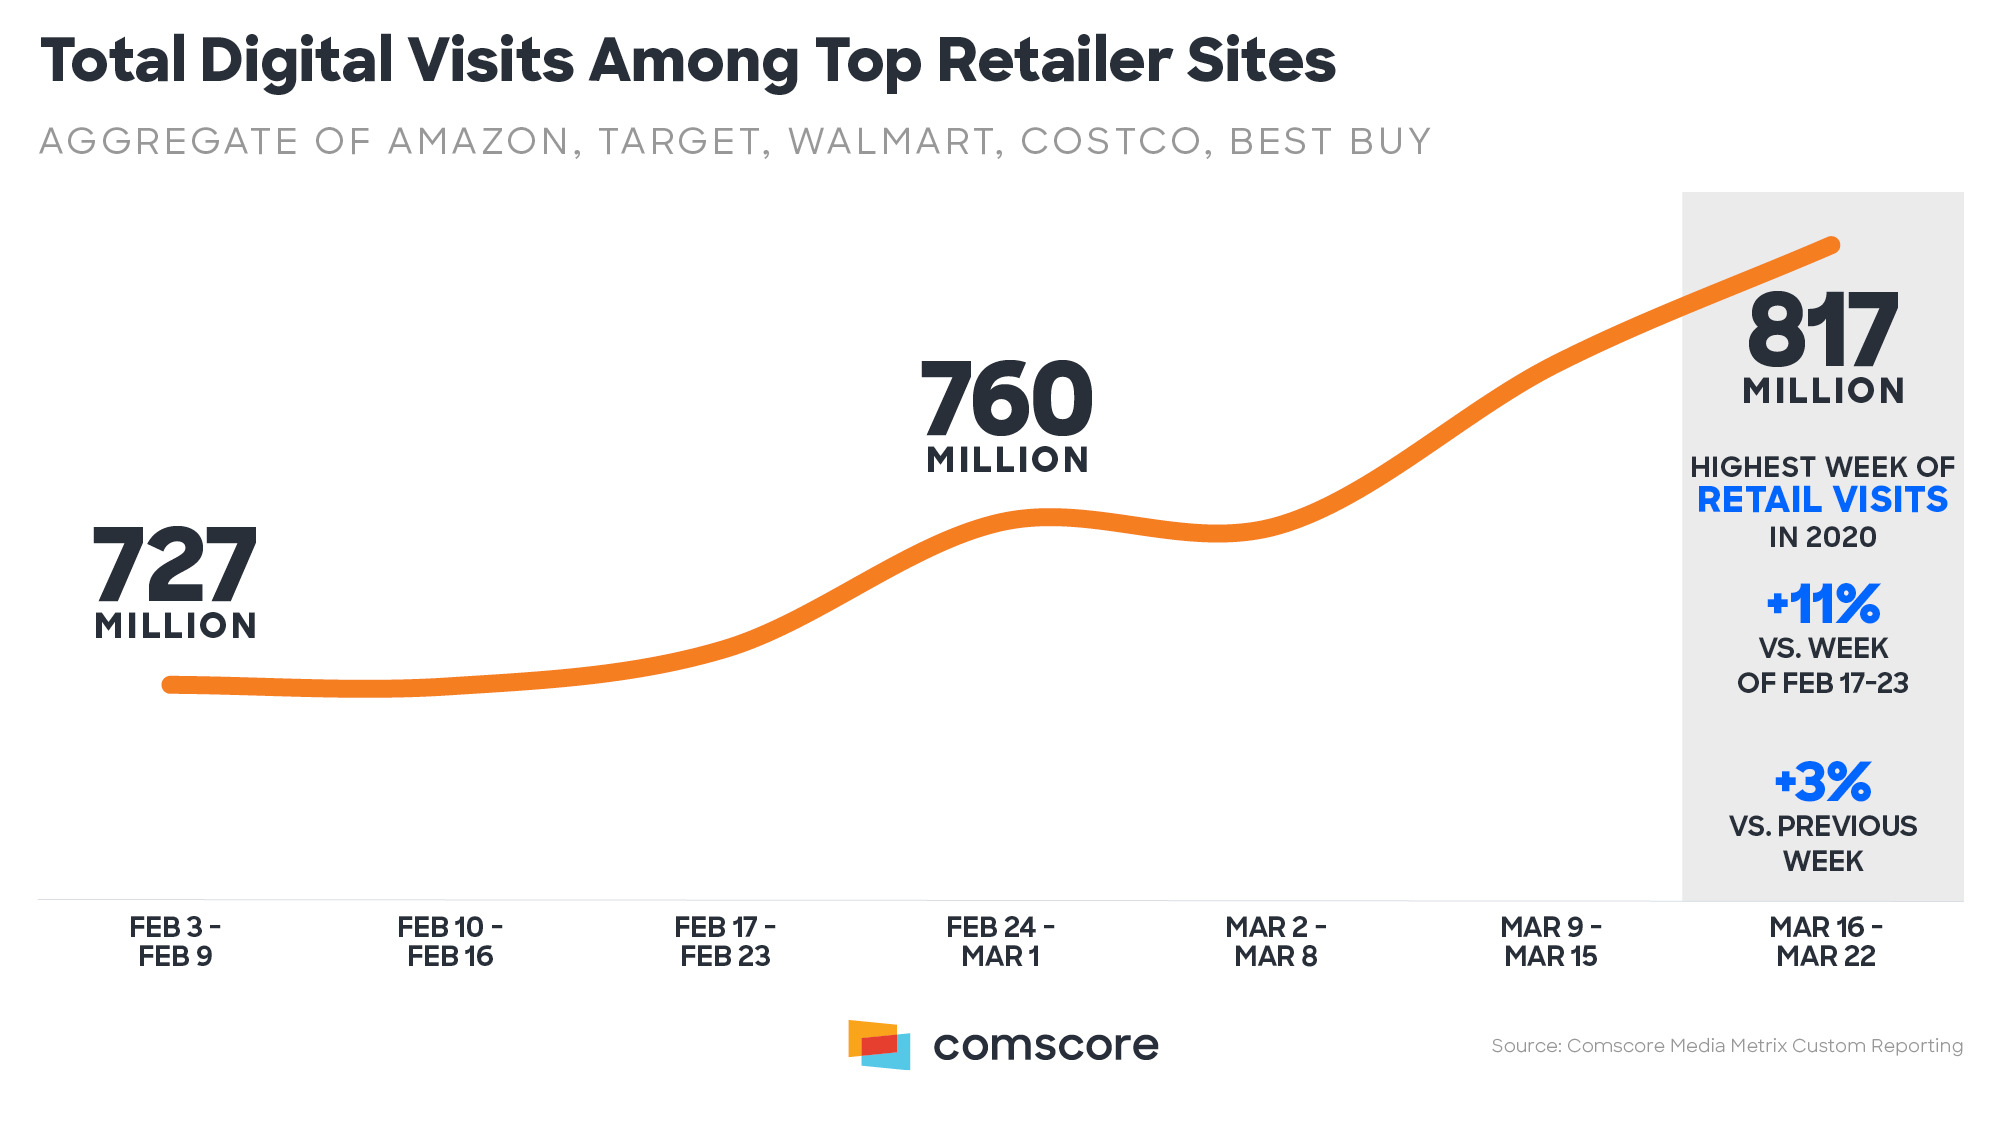 Total Digital visits among retailer sites